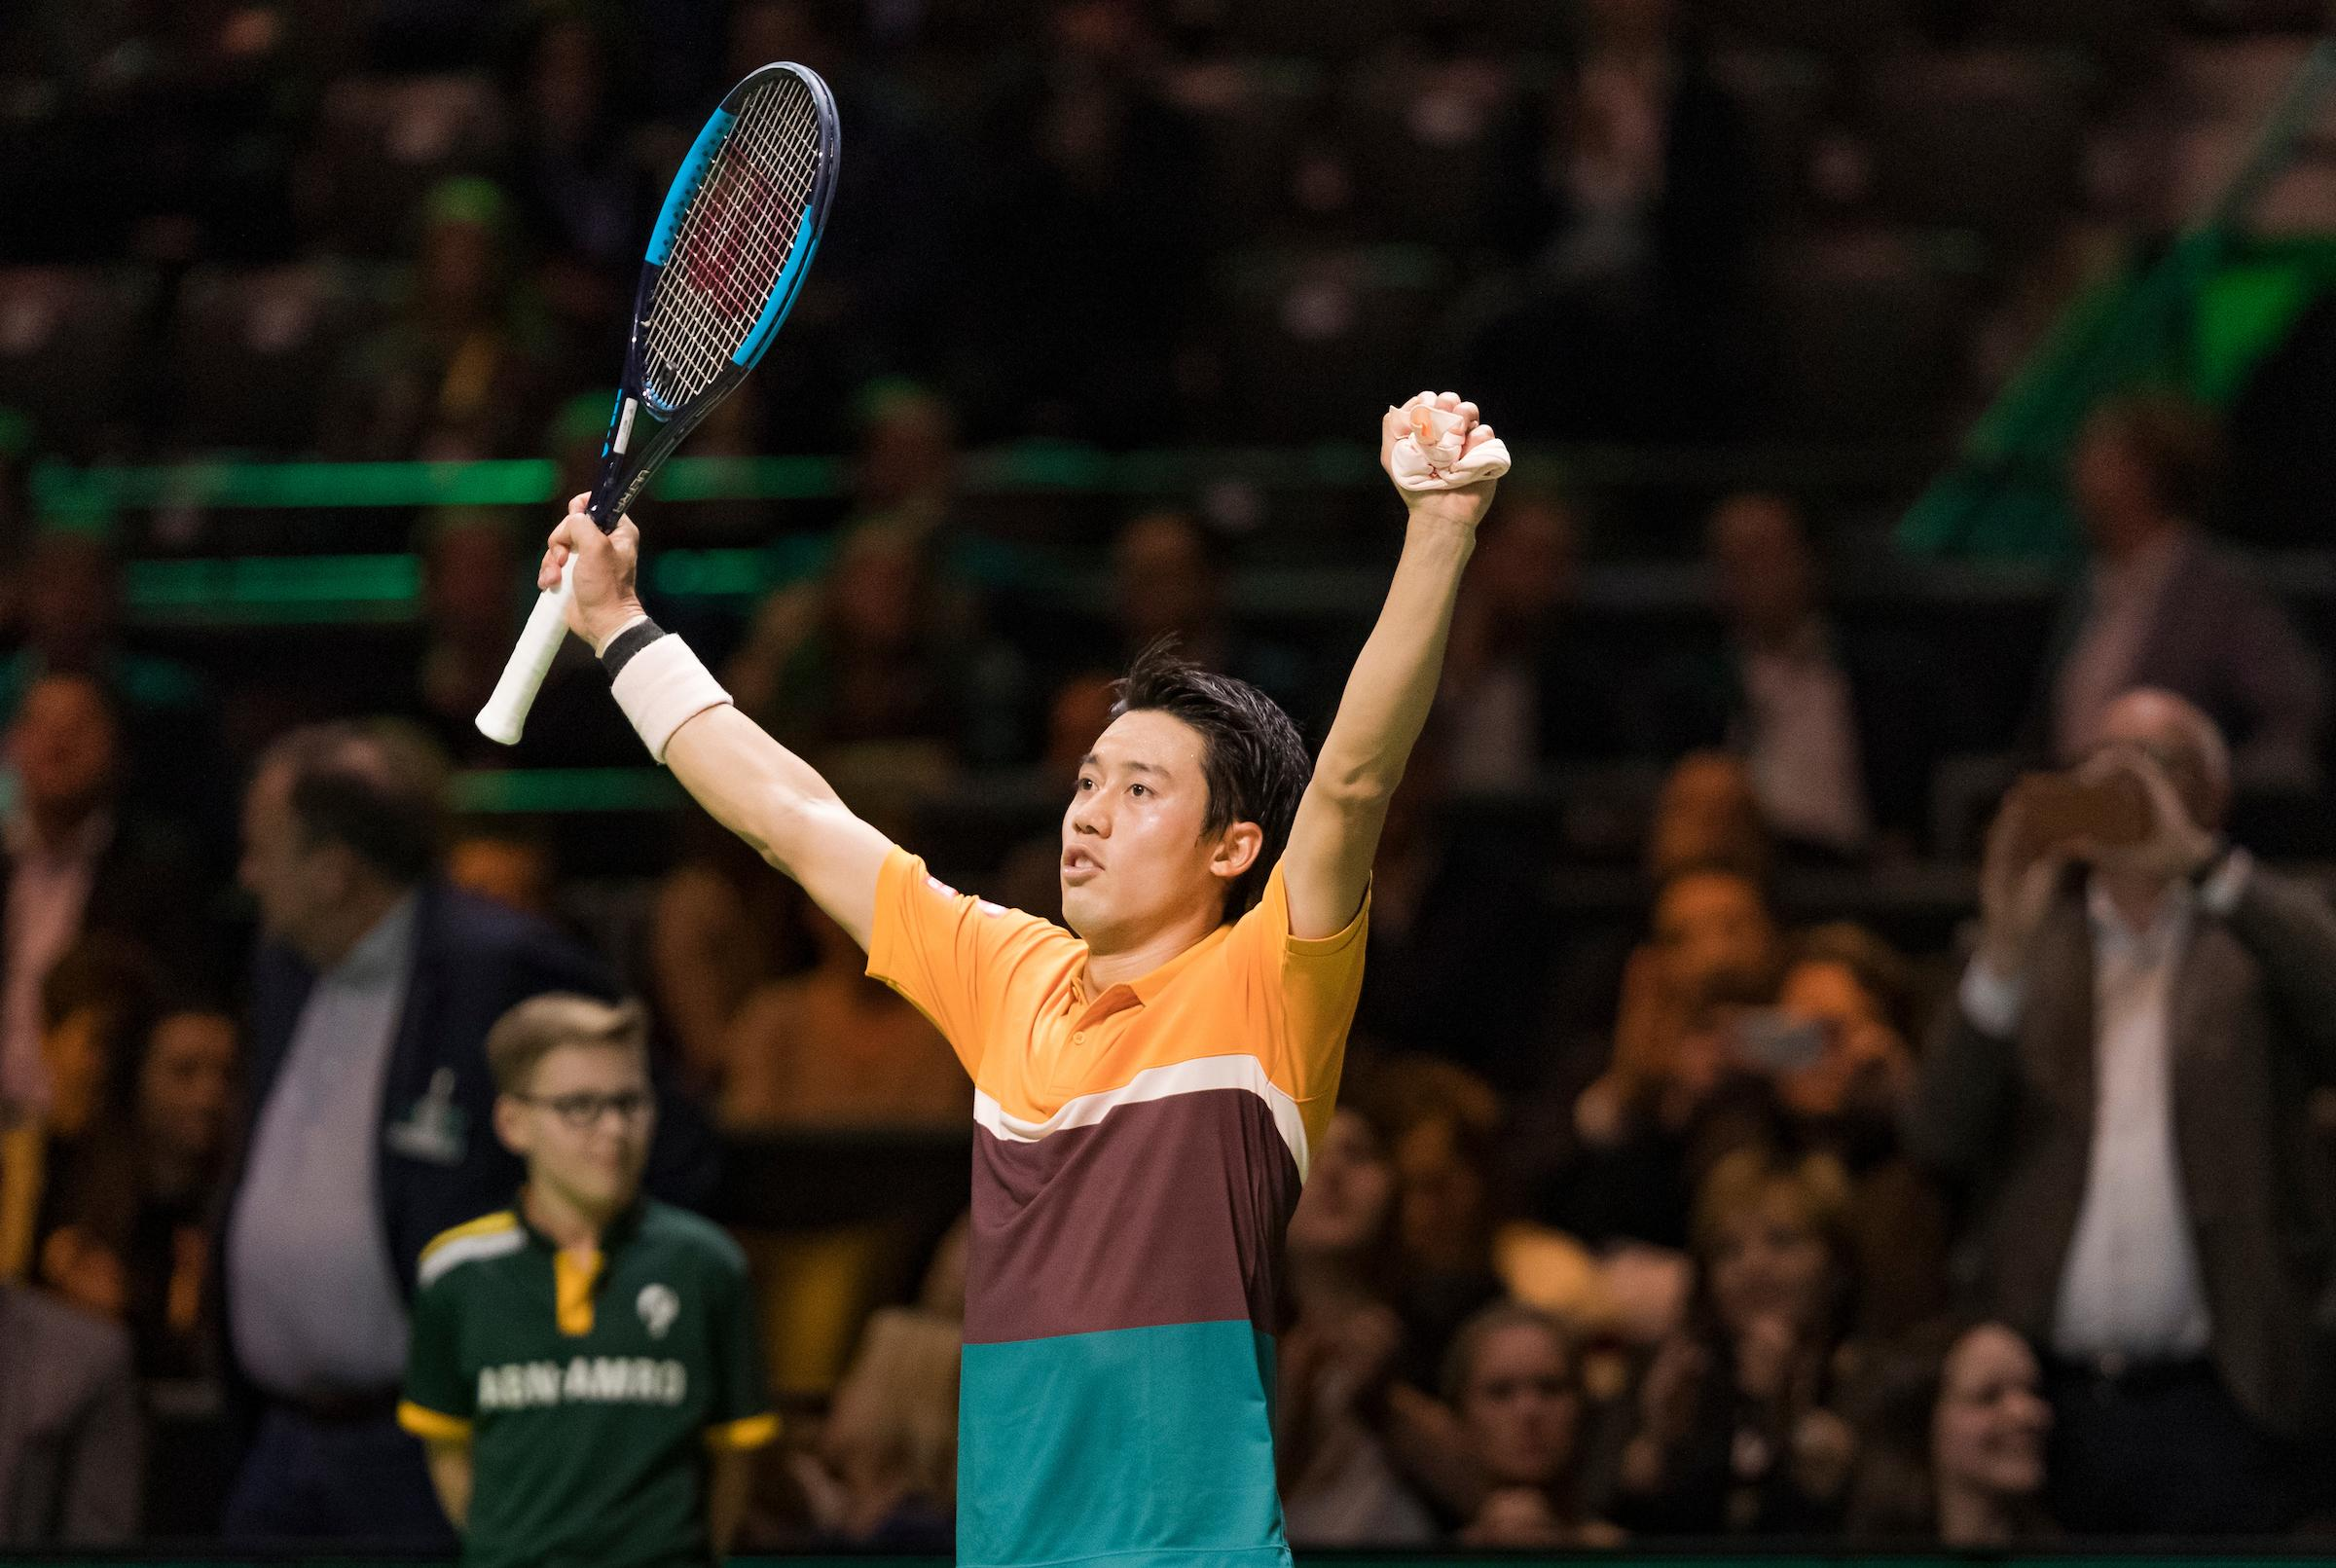 Kei Nishikori announces participation in ABN AMRO World Tennis Tournament